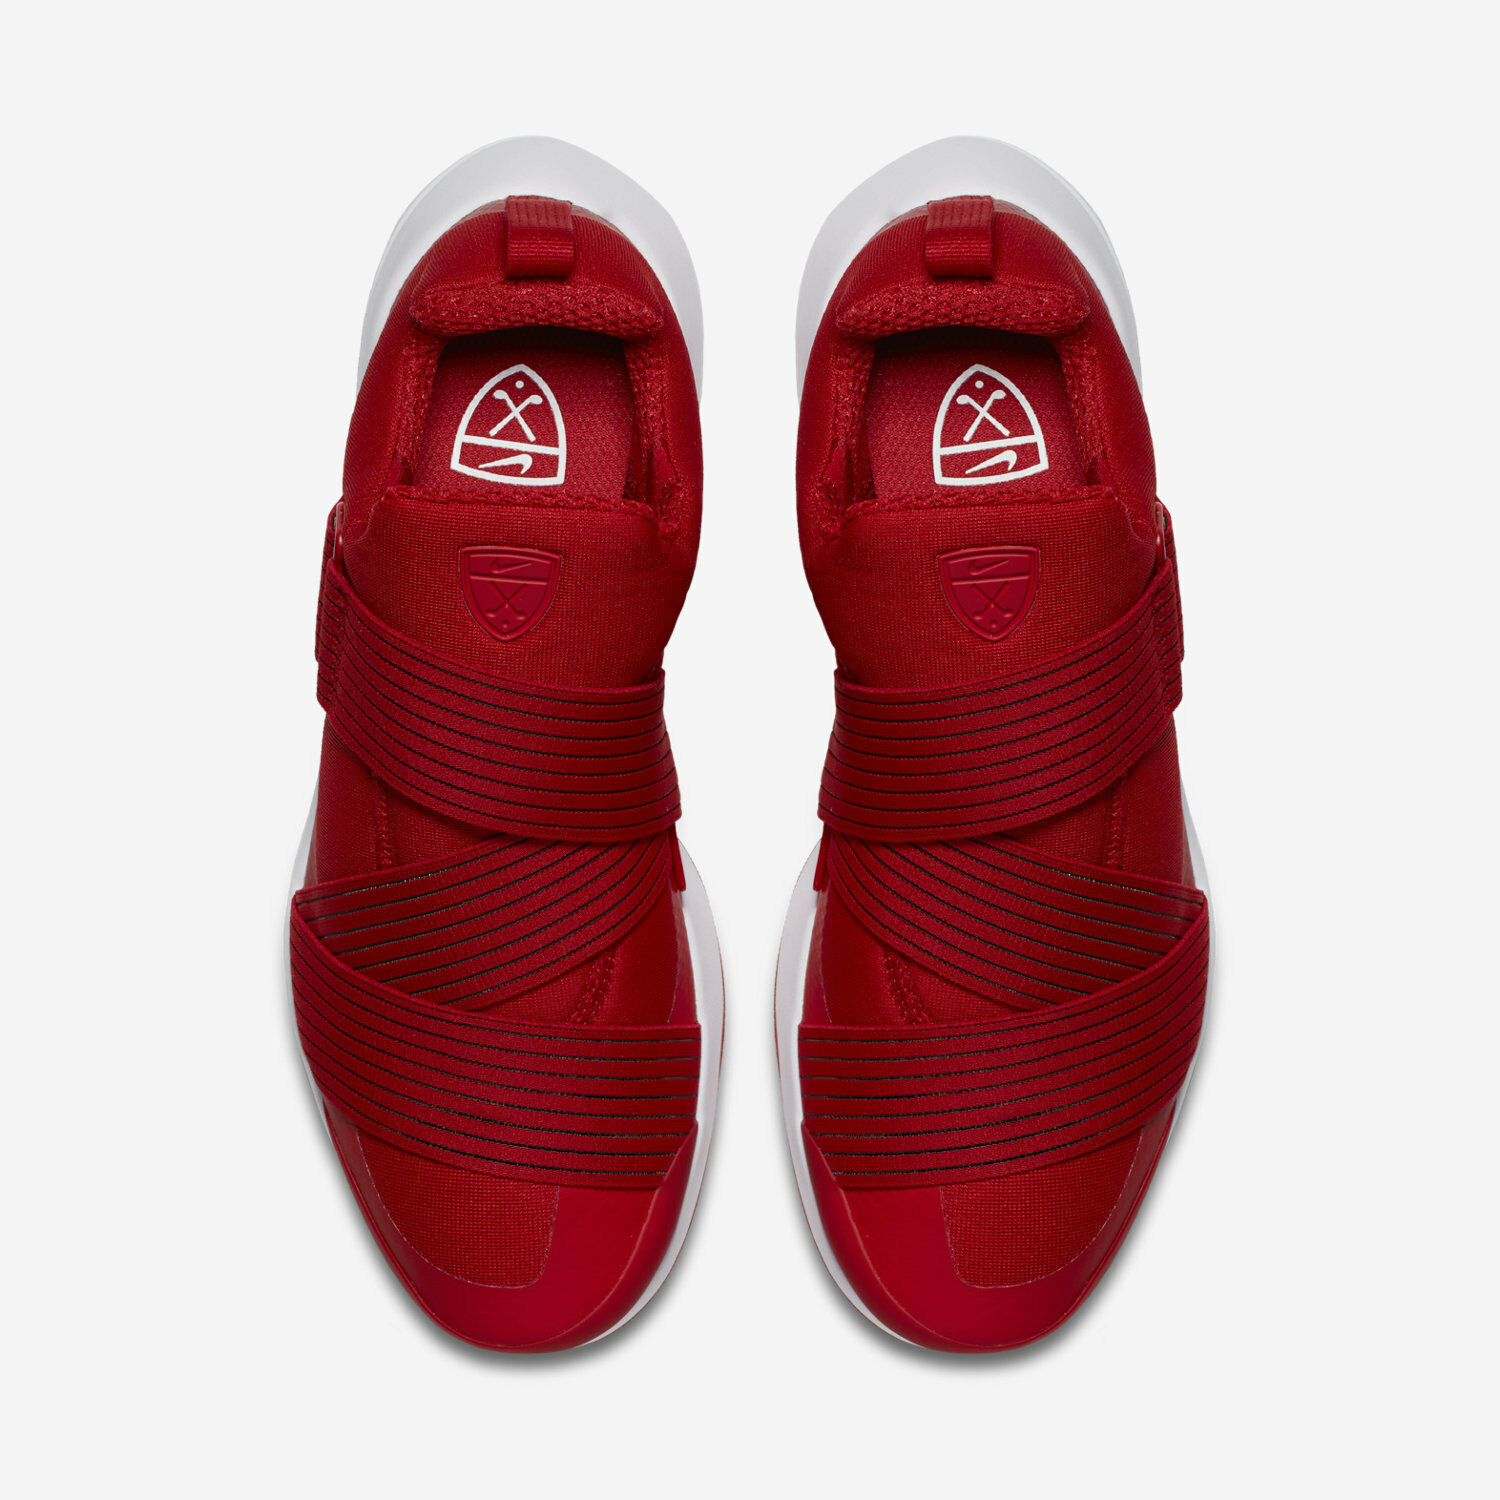 77f1a3d145feb ... Nike Air Zoom Gimme Men s Spikeless Golf Shoes Shoes Shoes - Team Red White  849955- ...